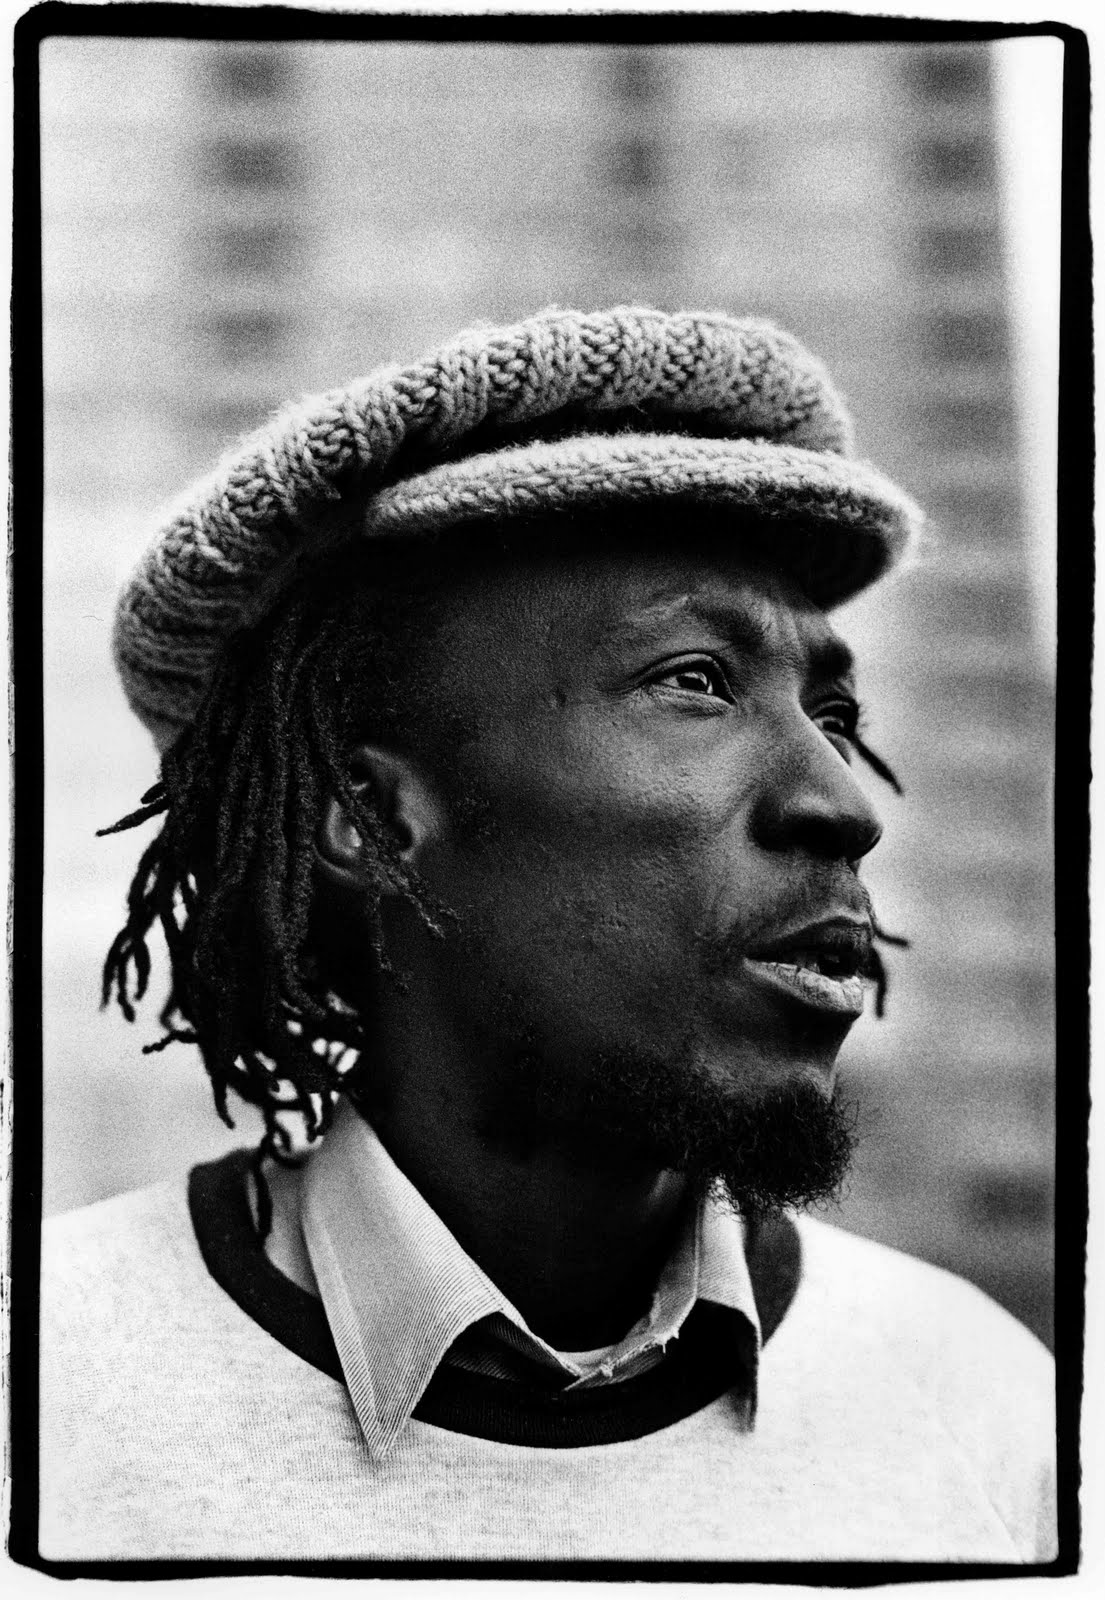 <b>Alton Ellis</b> - Mr. Soul Of Jamaica - 1967 - AltonEllis01bw